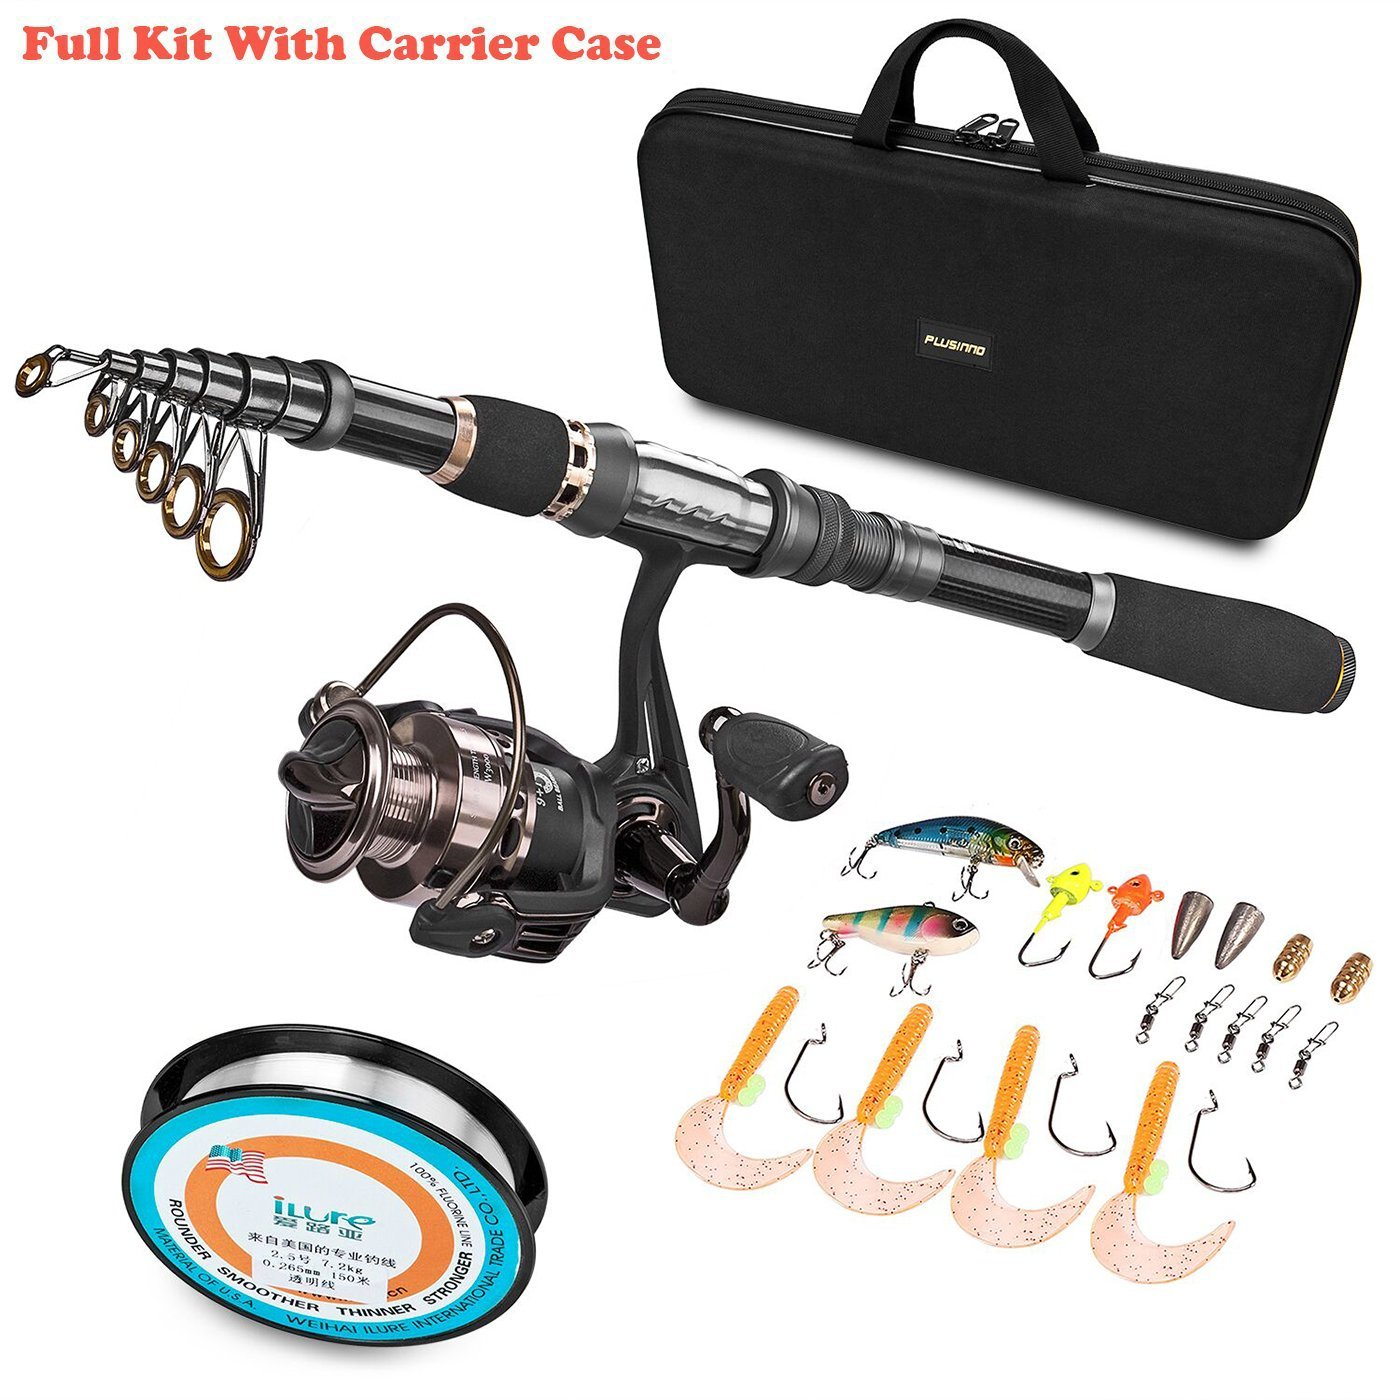 6. PLUSINNO Telescopic Fishing Rod and Reel Combos